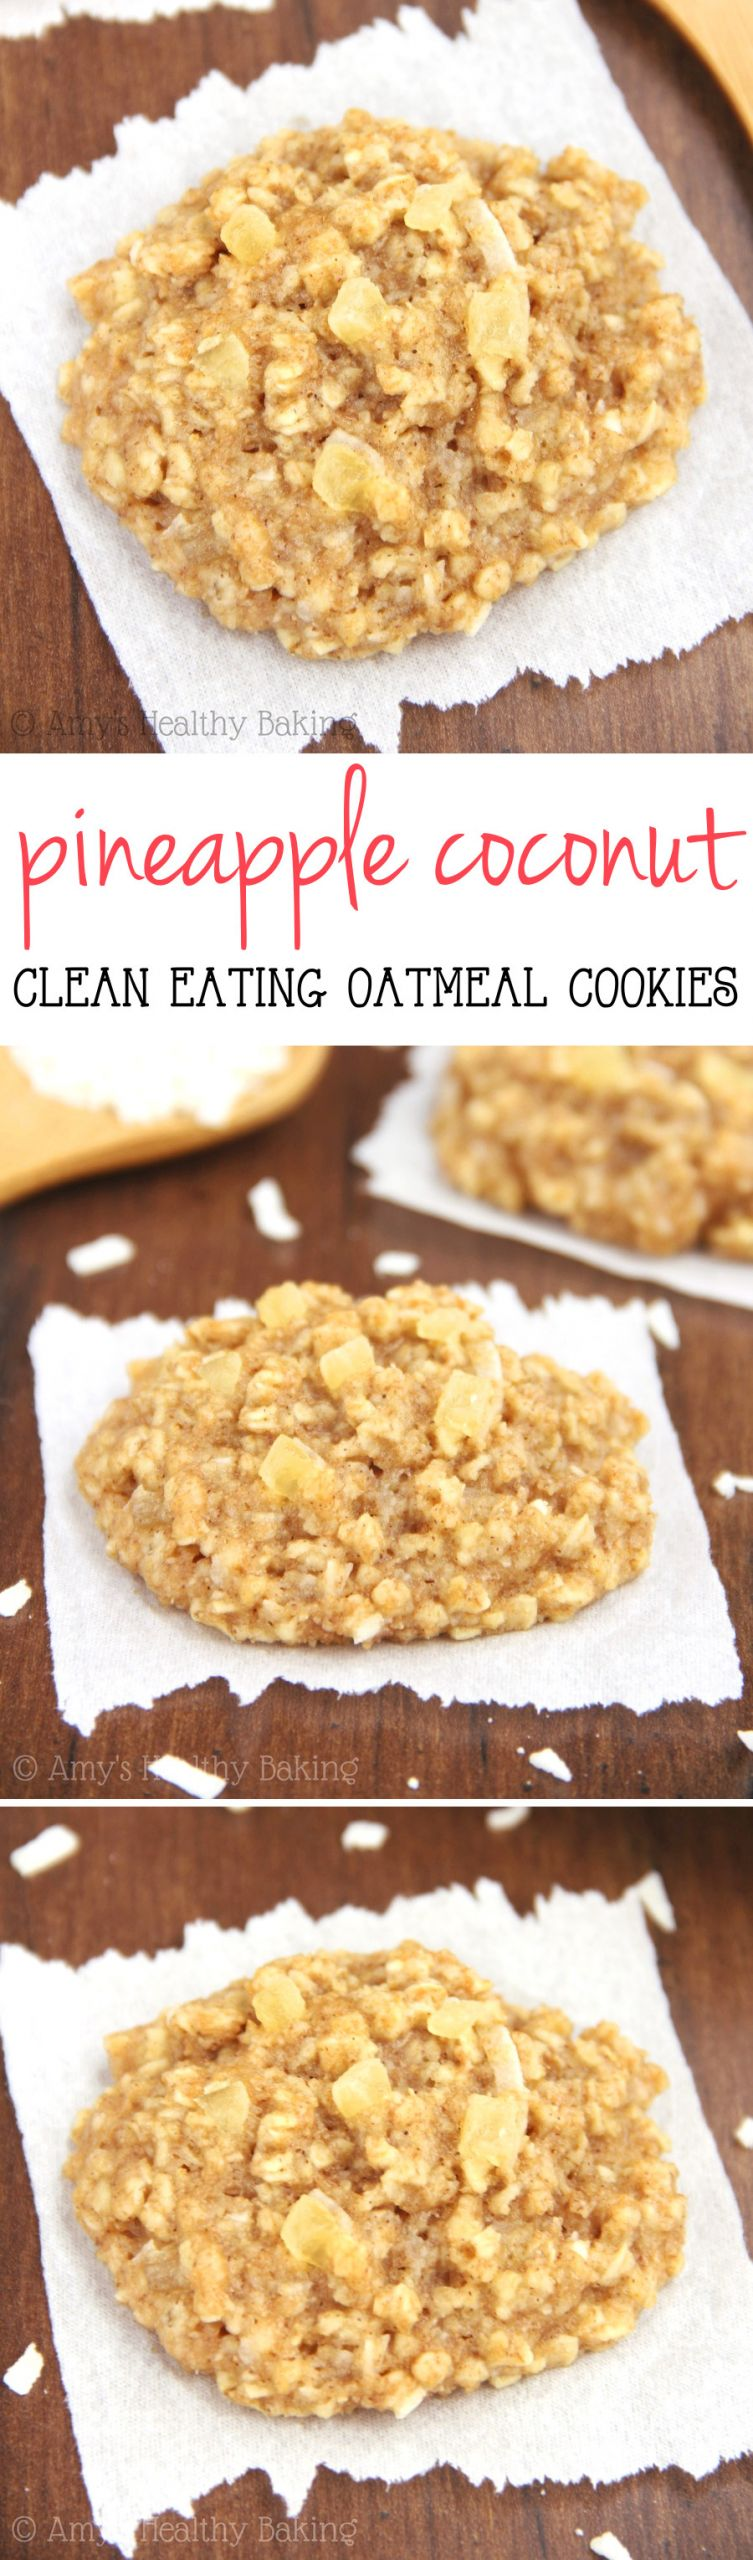 Coconut Oatmeal Cookies  Pineapple Coconut Oatmeal Cookies